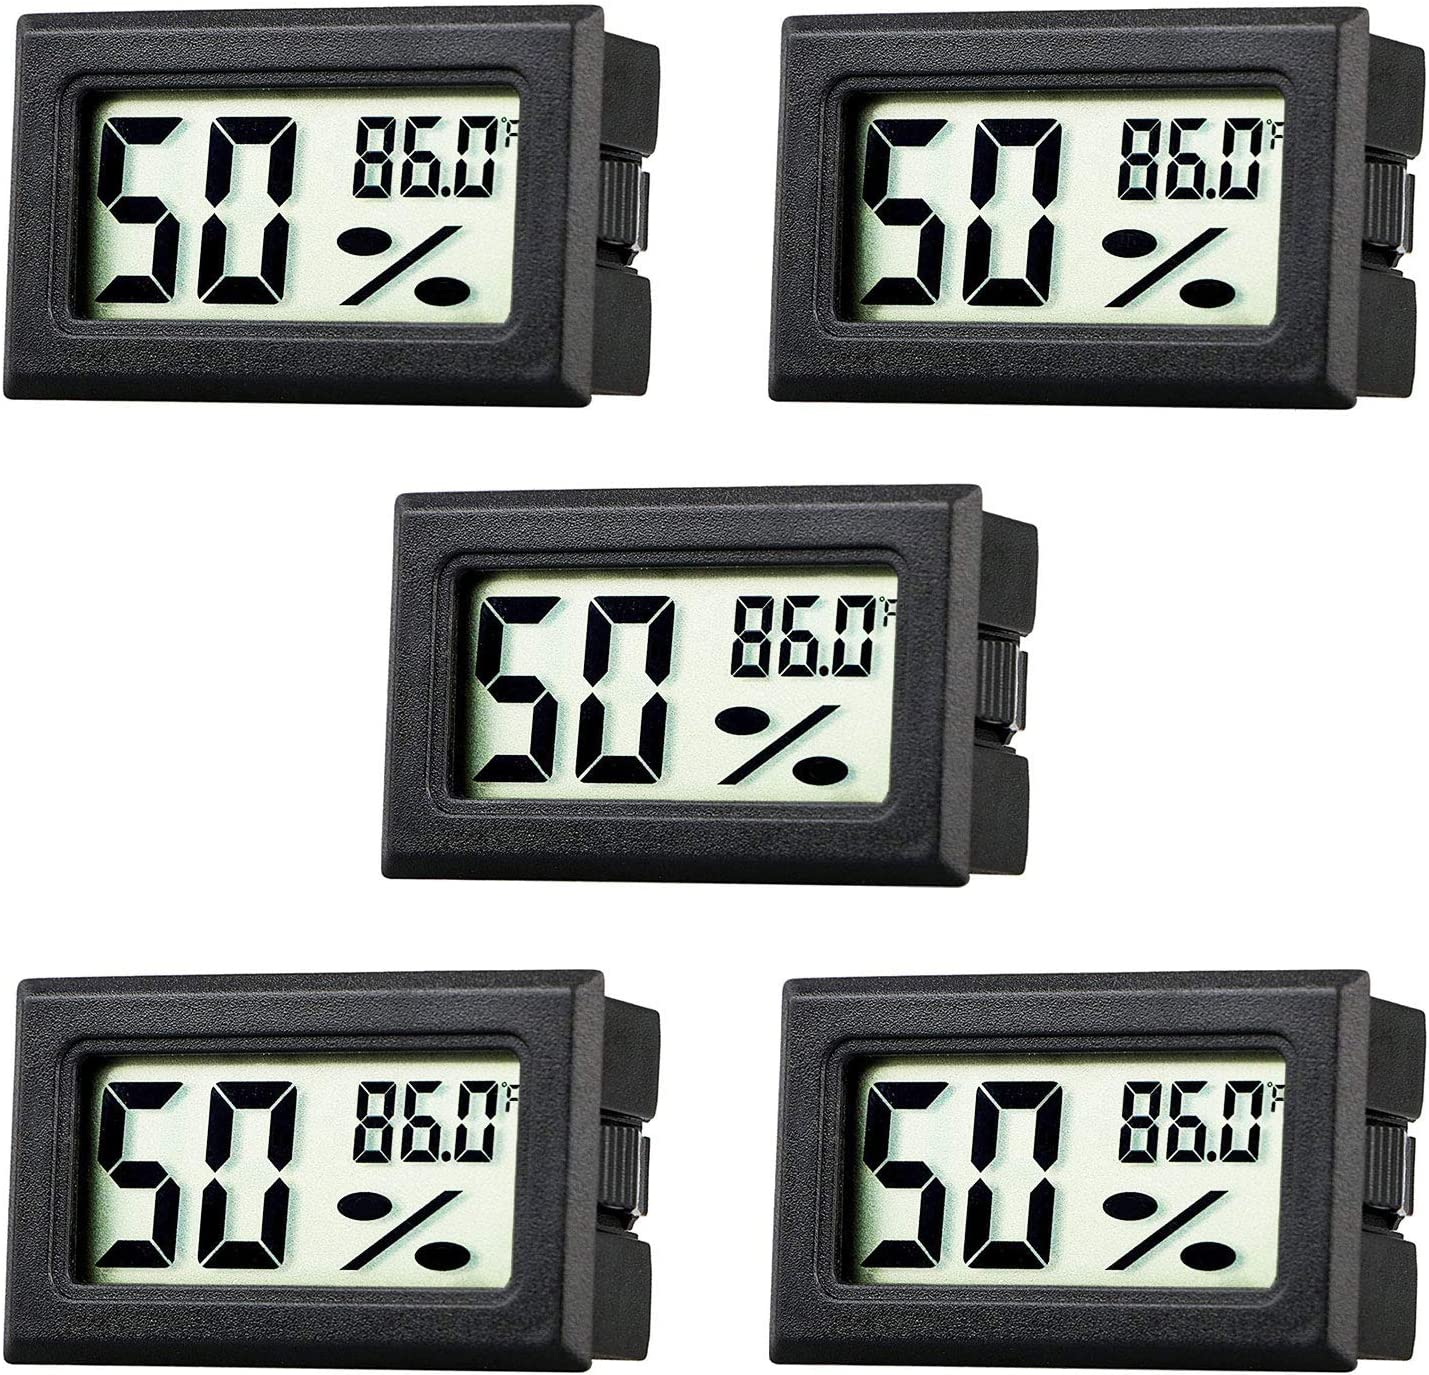 U.S from Solid Mini LCD Digital Indoor Temperature /& Humidity Gauge Thermometer Hygrometer